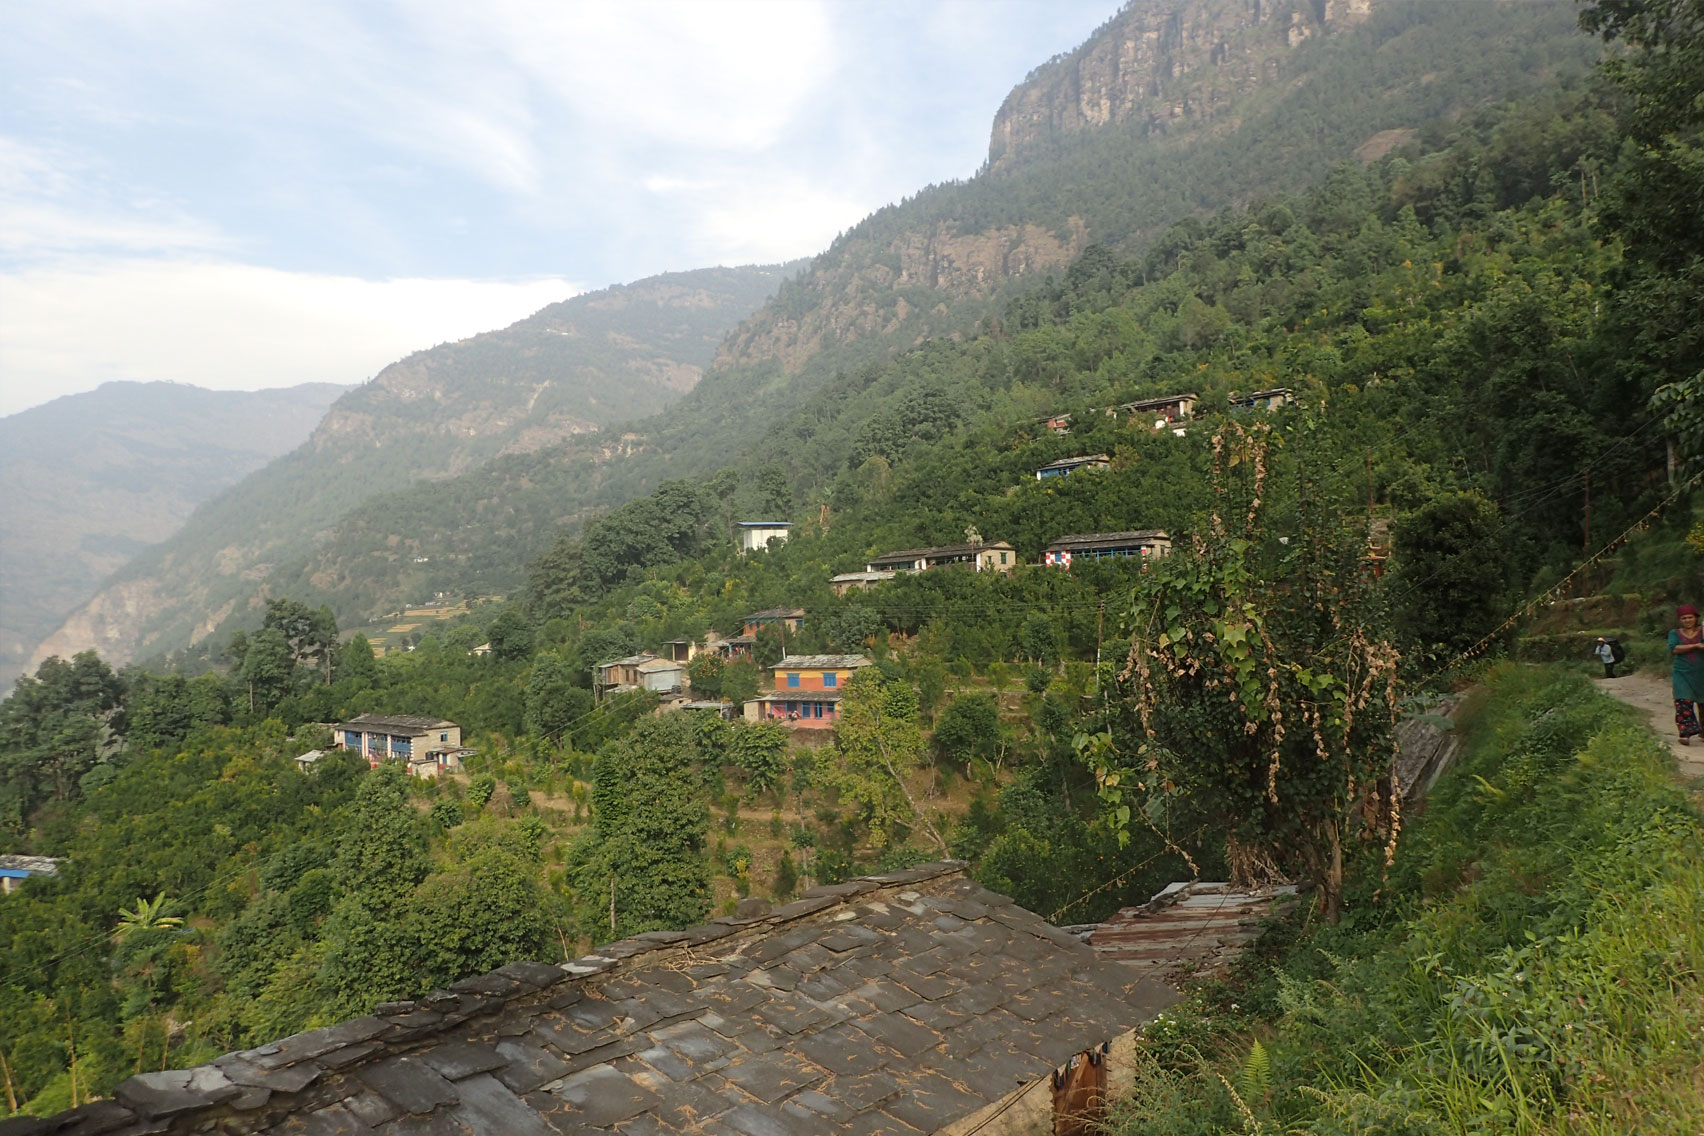 Day 3: Drive from Pokhara to Galeshwar (4hrs, 1200m) and trek to Banskharka (4hrs, 1550m)